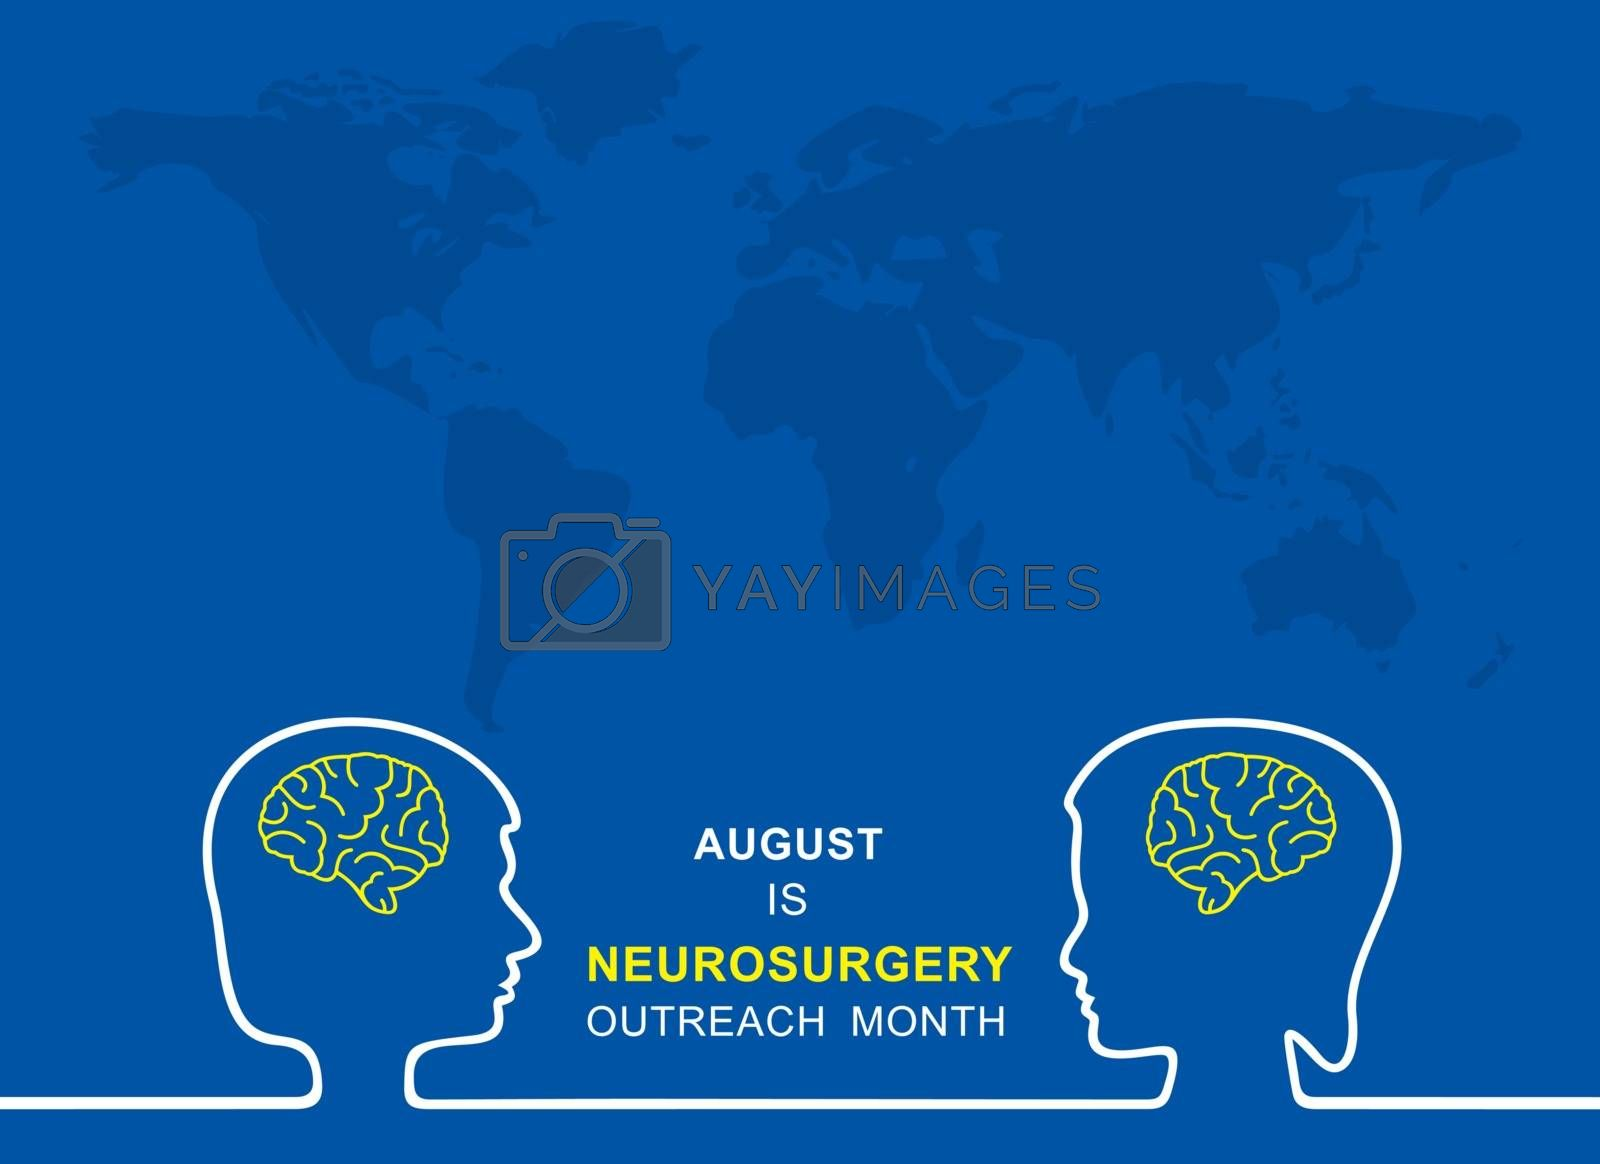 Neurosurgery Outreach Month observed in August by graphicsdunia4you